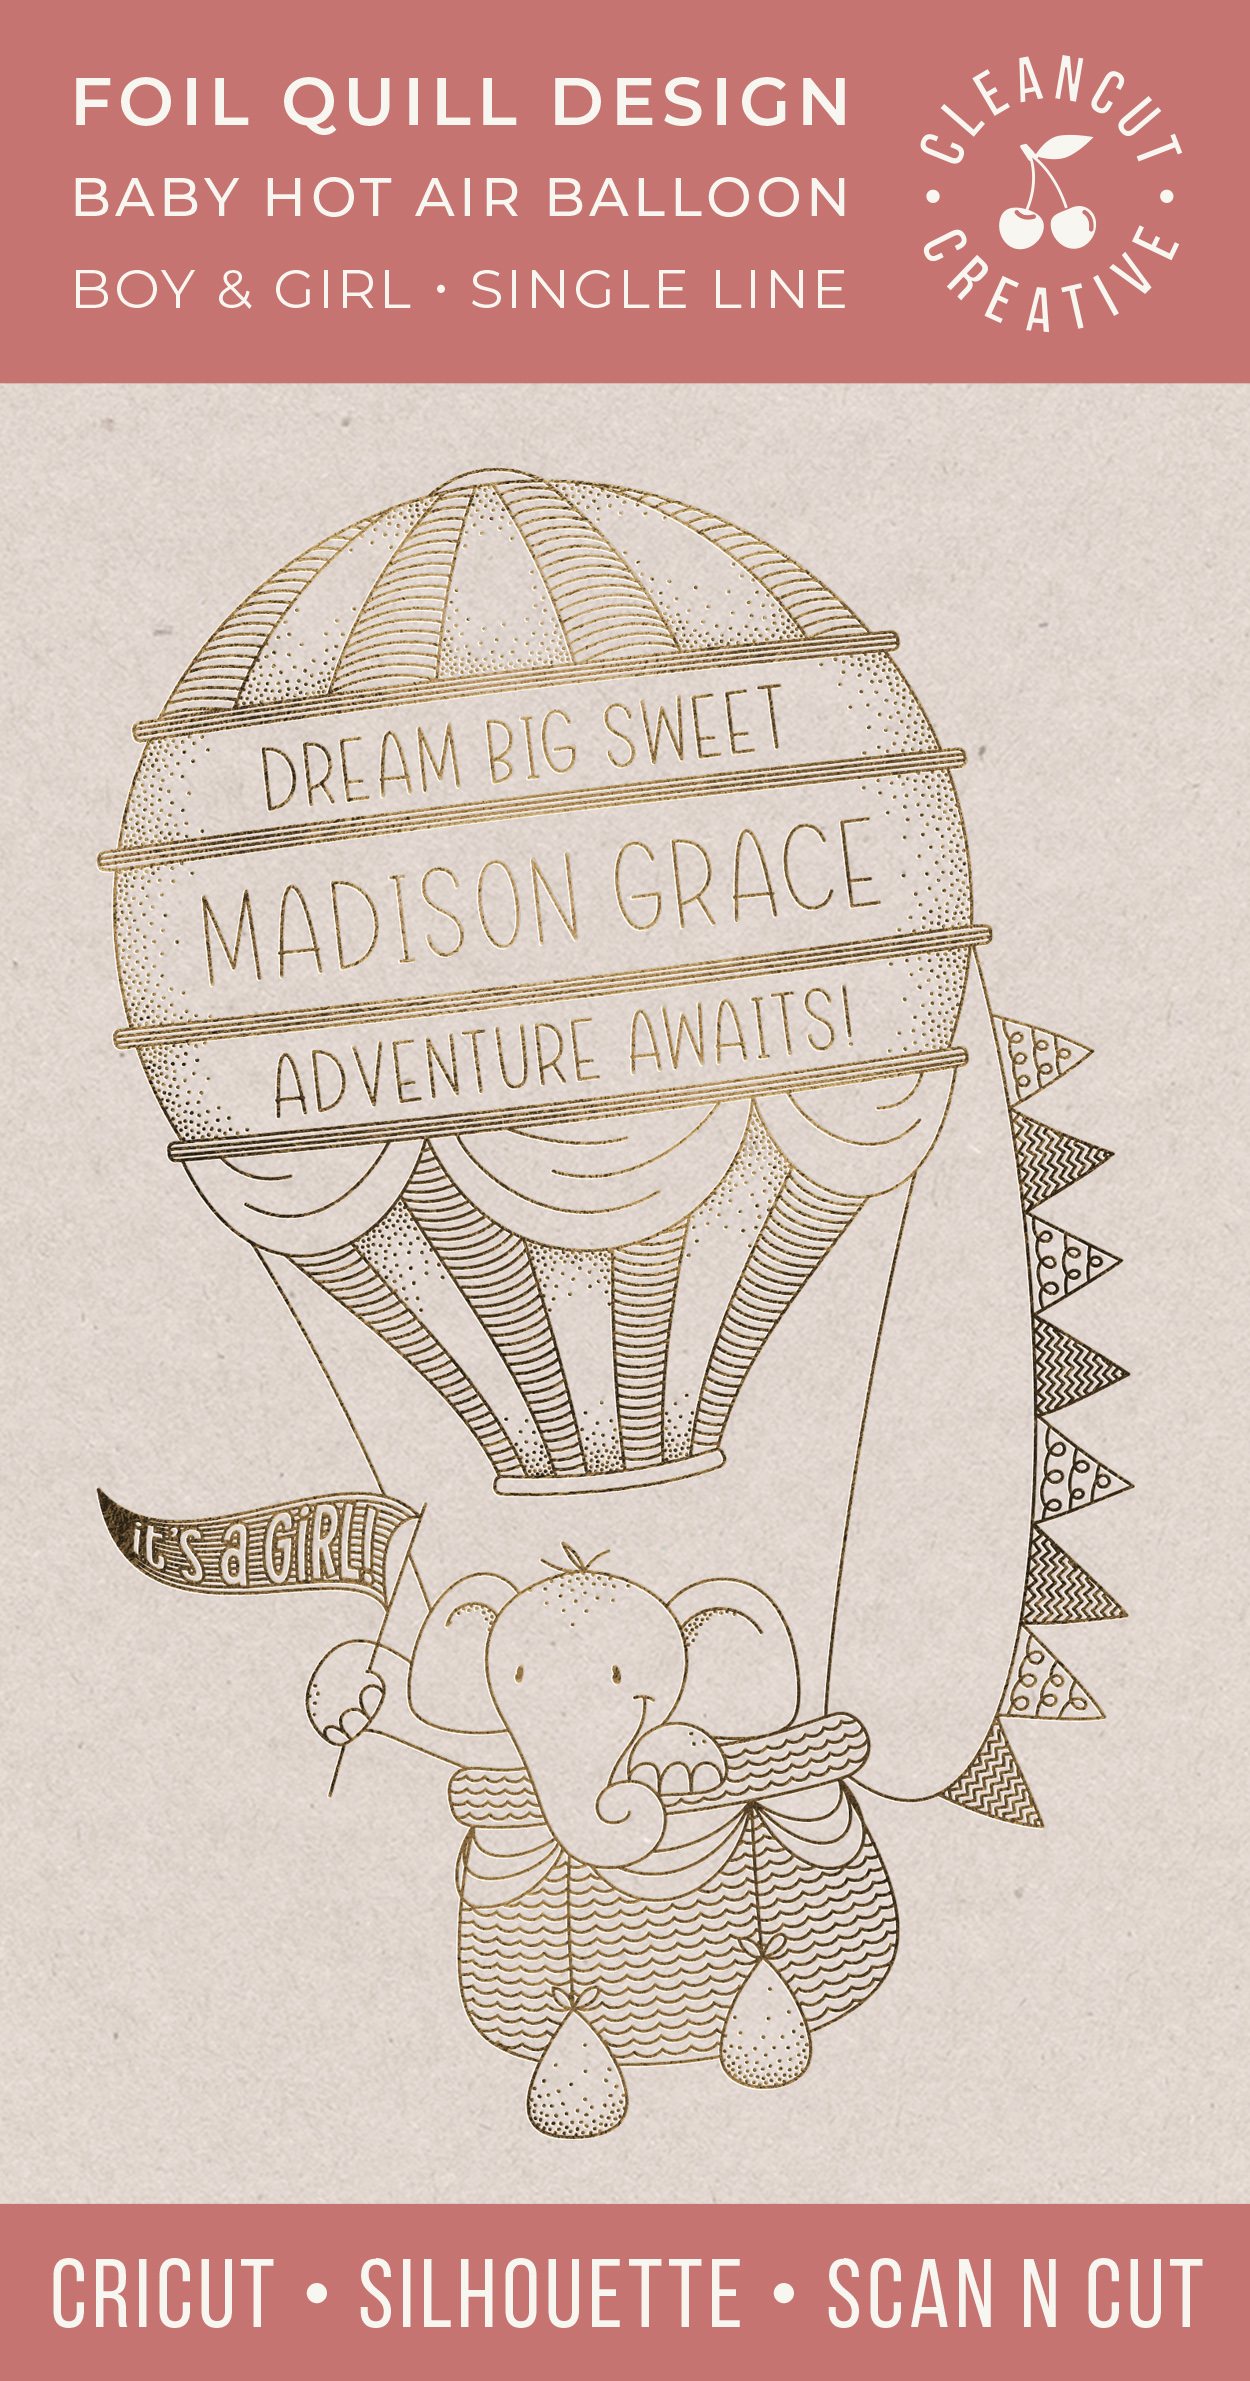 Foil Quill HOT AIR BALLOON Birth Stats Baby Announcement SVG example image 5